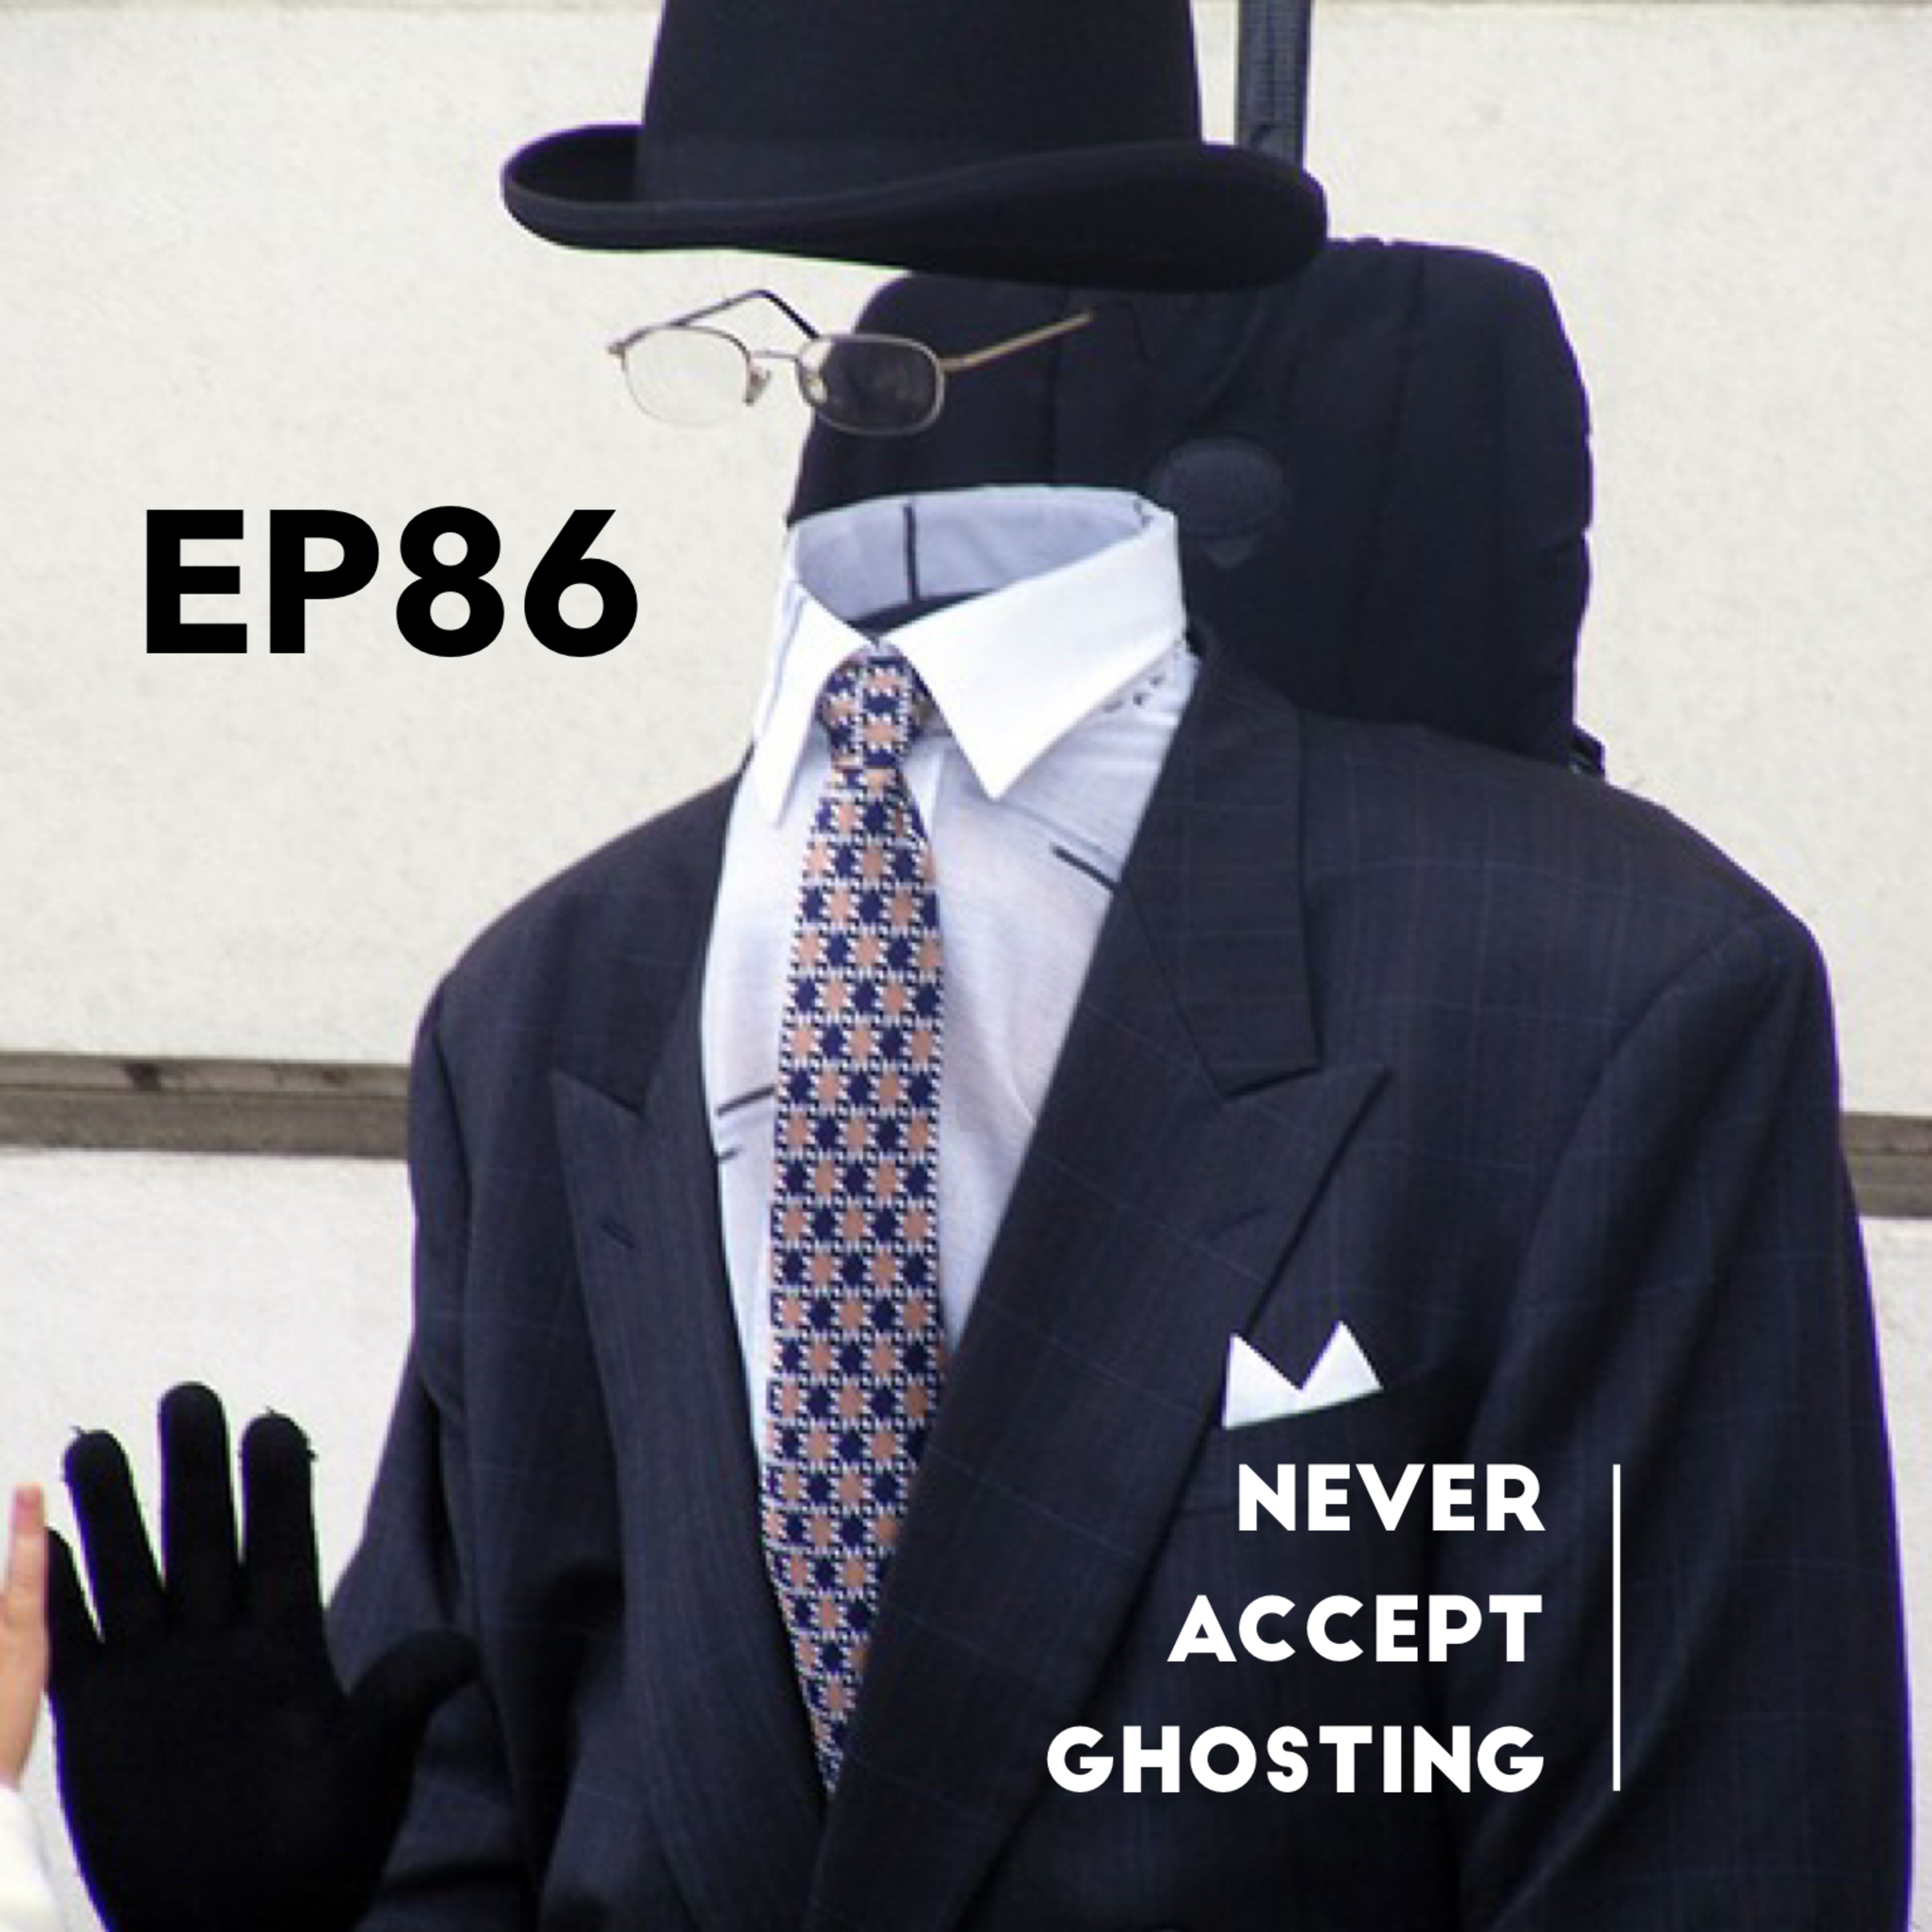 Episode 86: NEVER ACCEPT GHOSTING